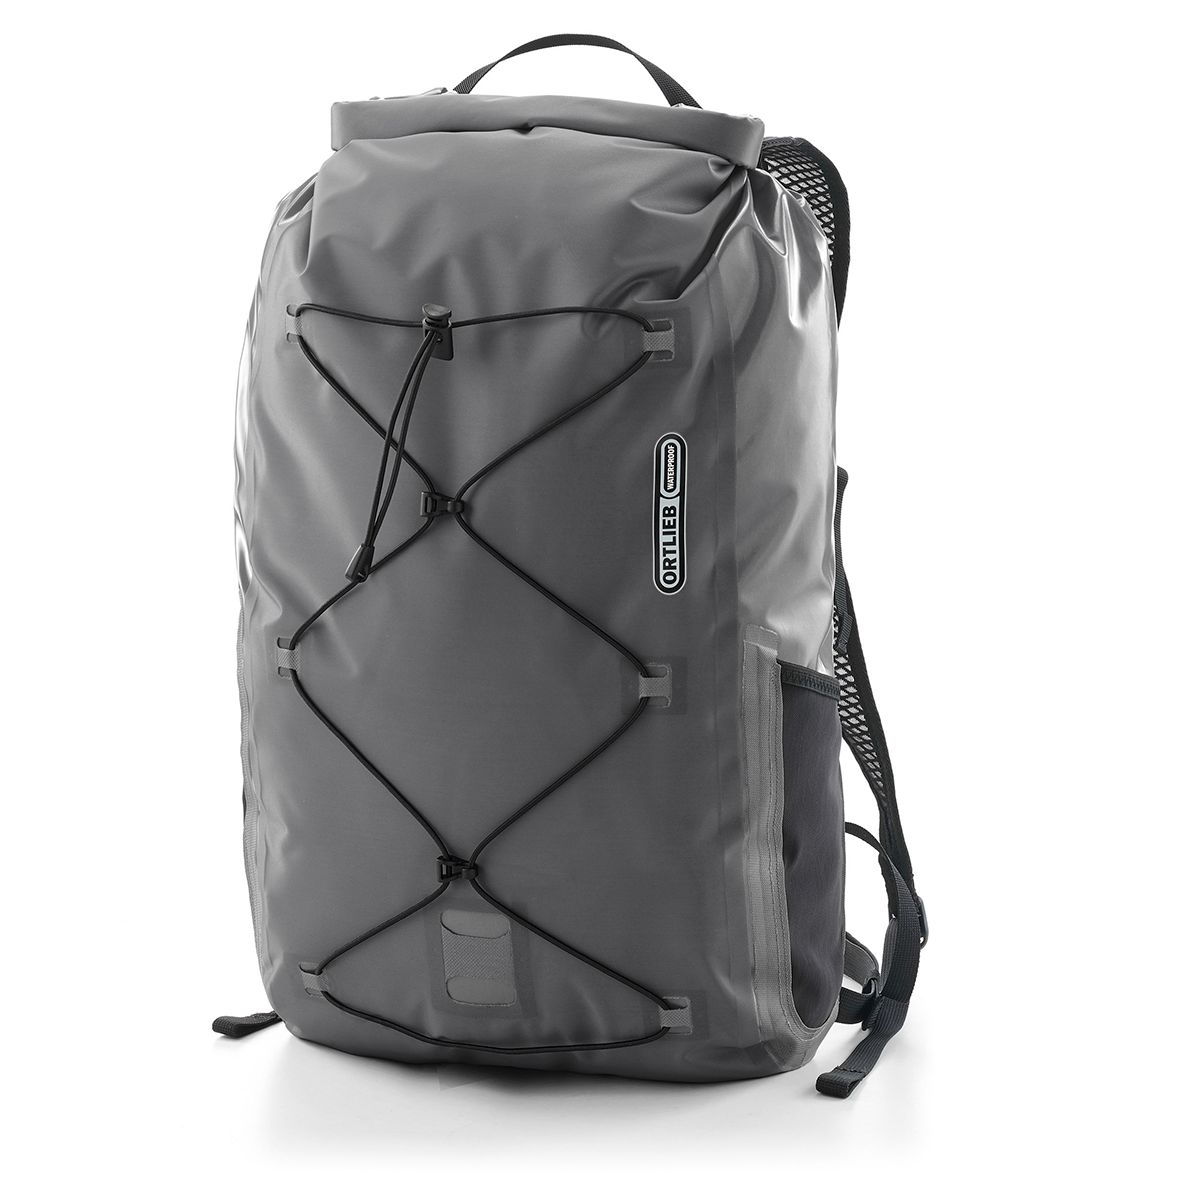 LIGHT-PACK TWO backpack